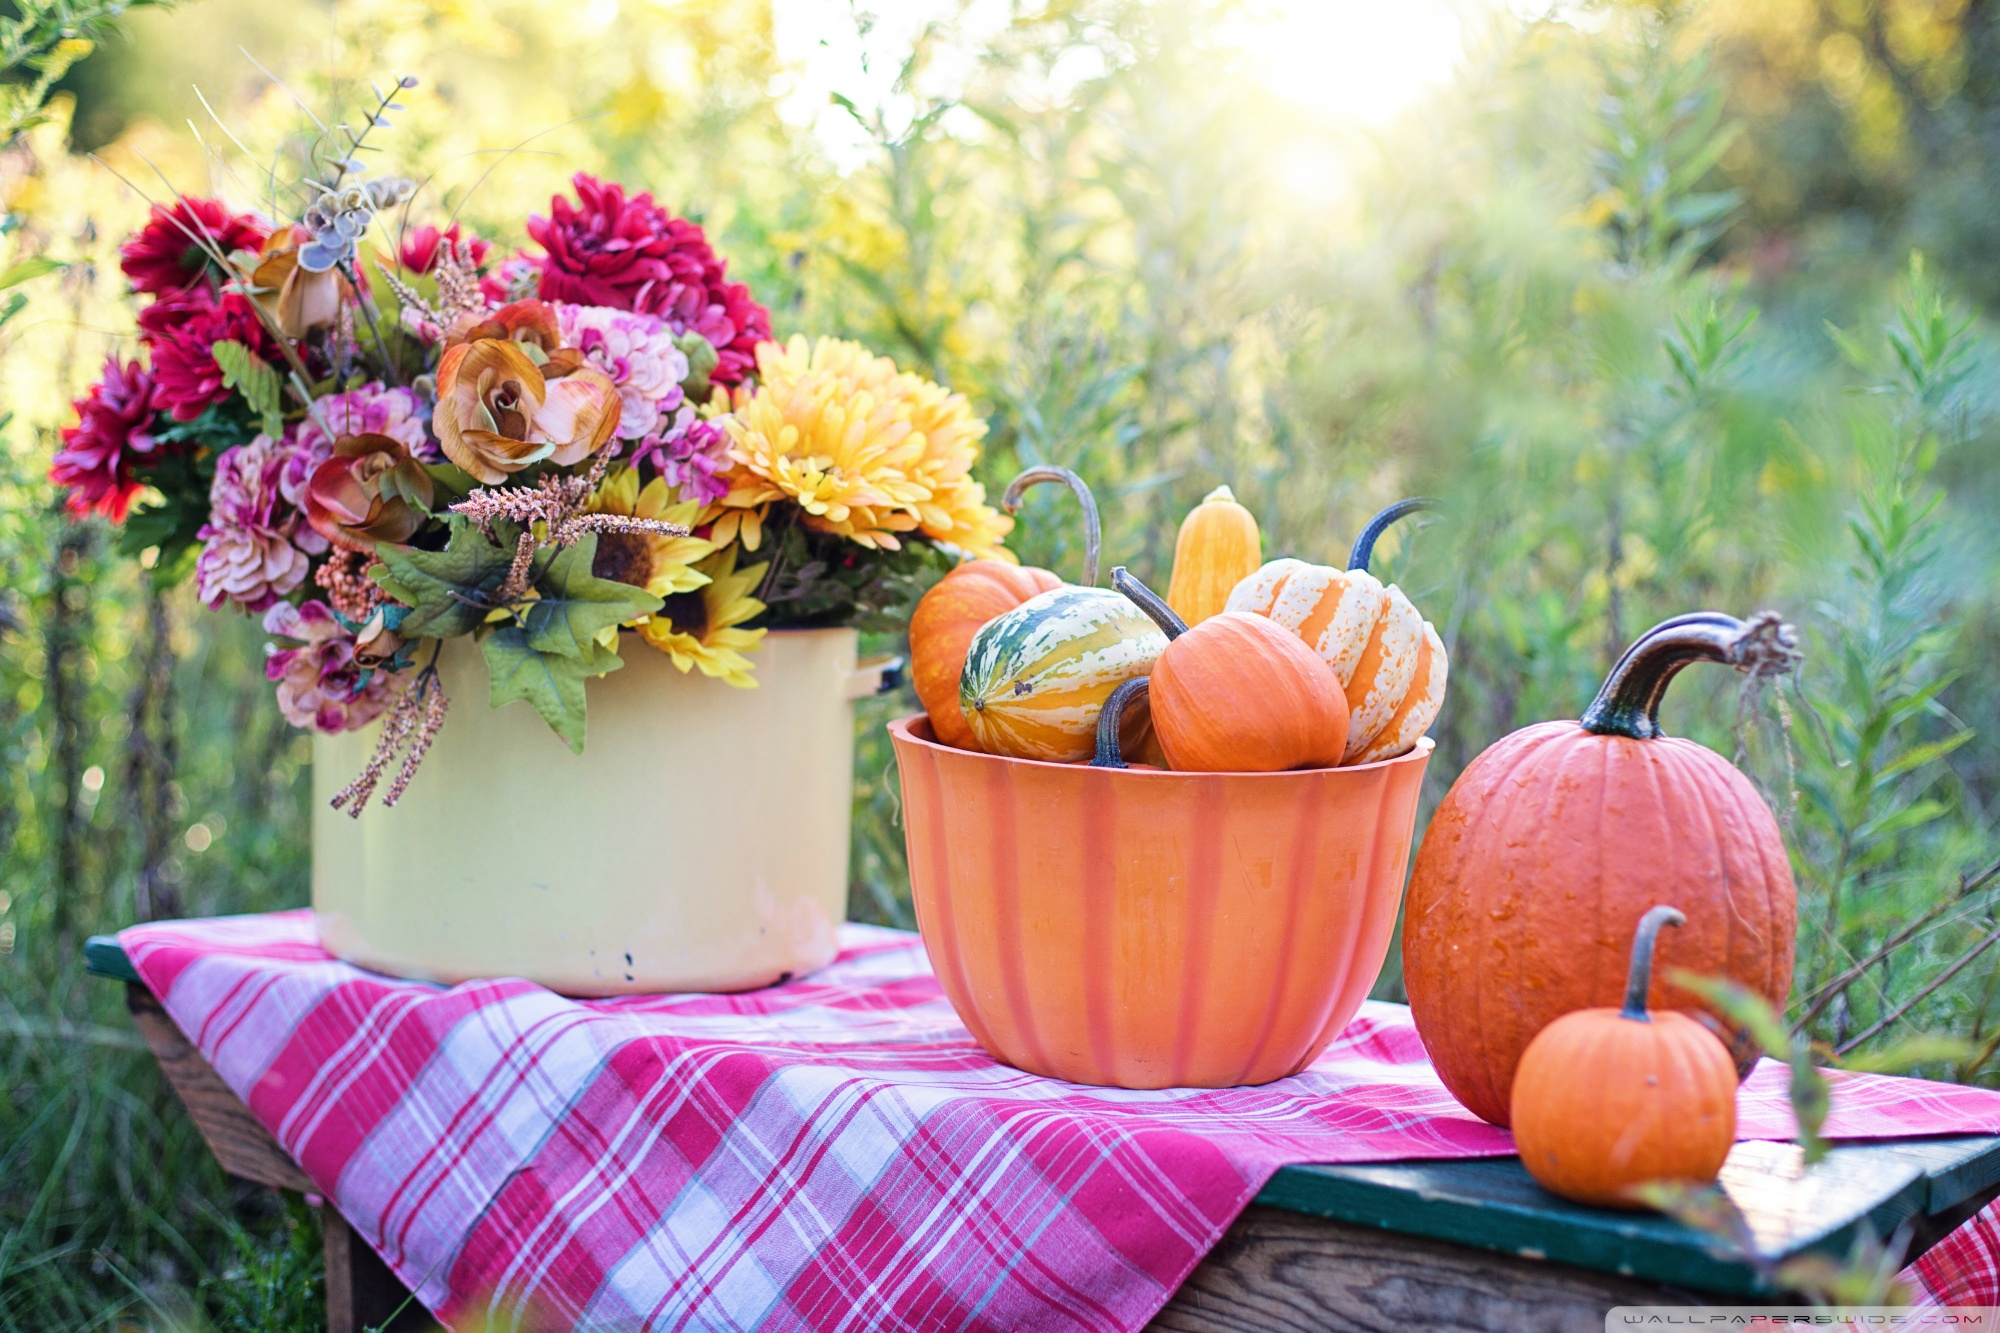 Fall Harvest Wallpaper 1024x768 Still Life Pumpkins In Bowl Flowers Early Autumn 4k Hd